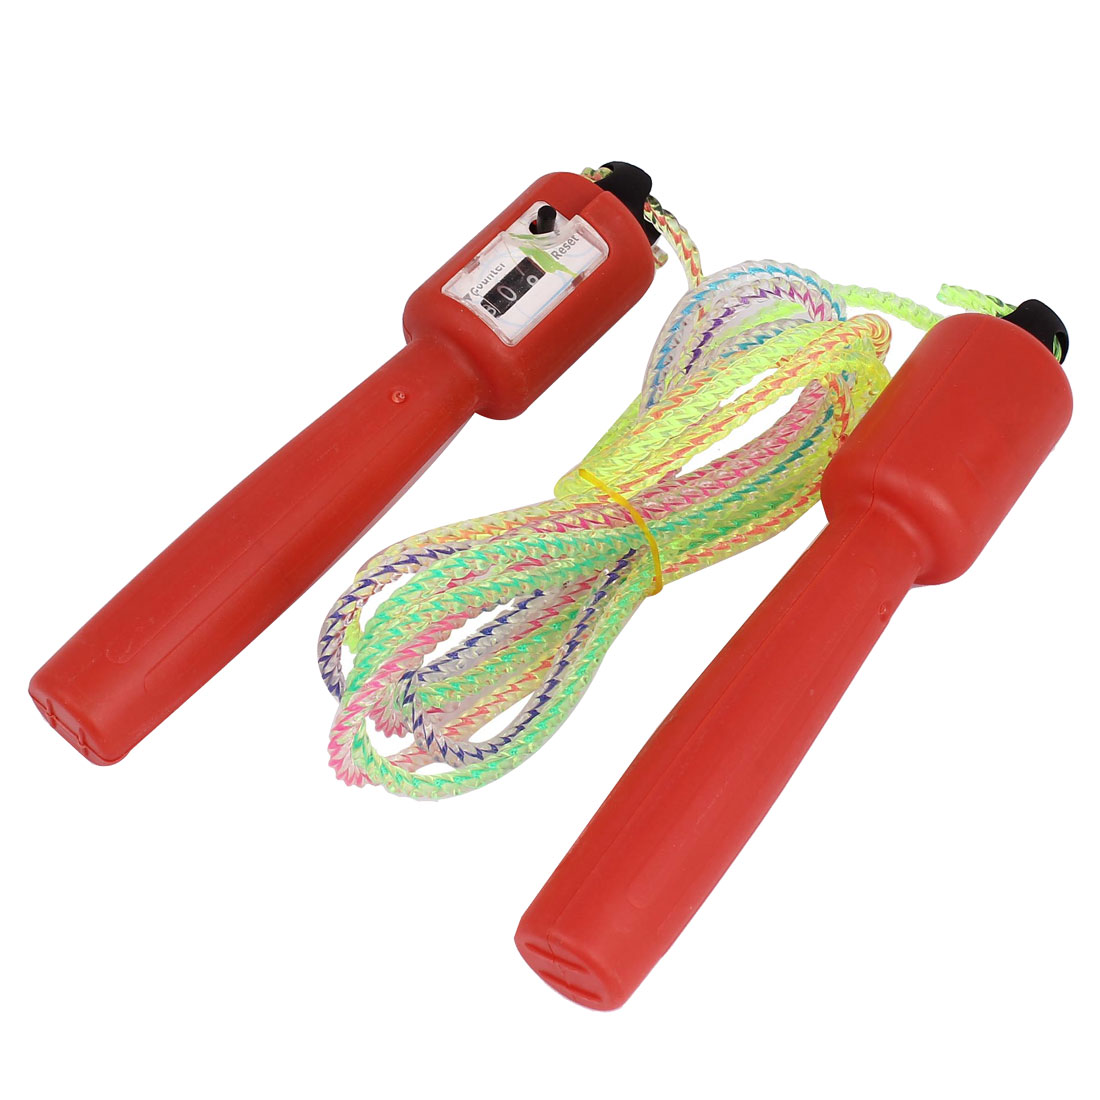 8Ft Length Gym Fitness Plastic Adjustable Speed Skipping Jumping Rope Red